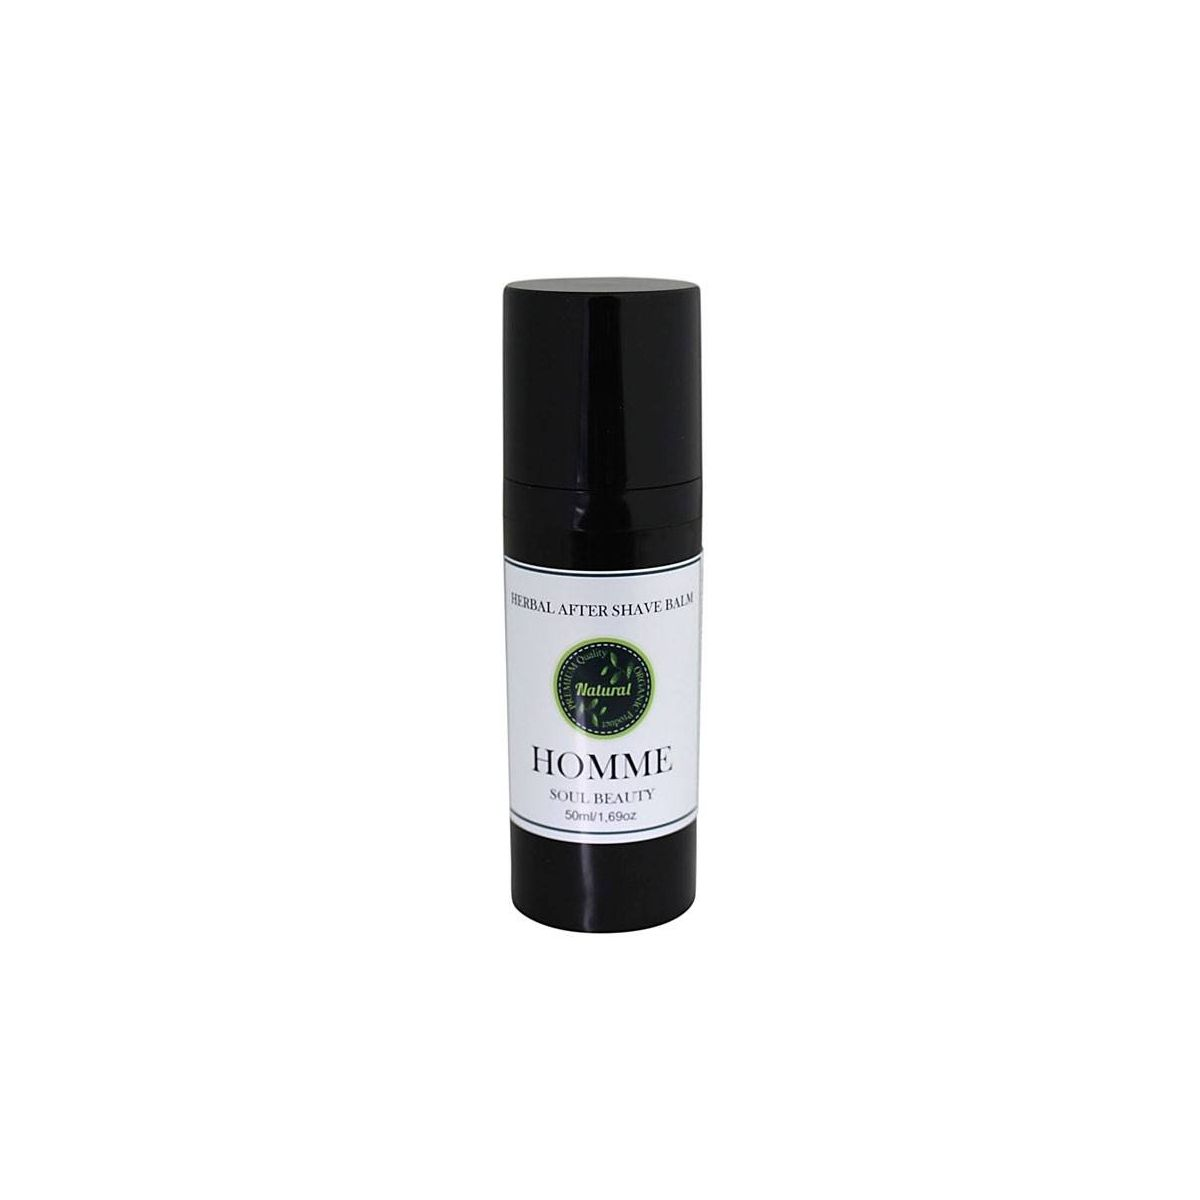 Herbal After Shave Balm